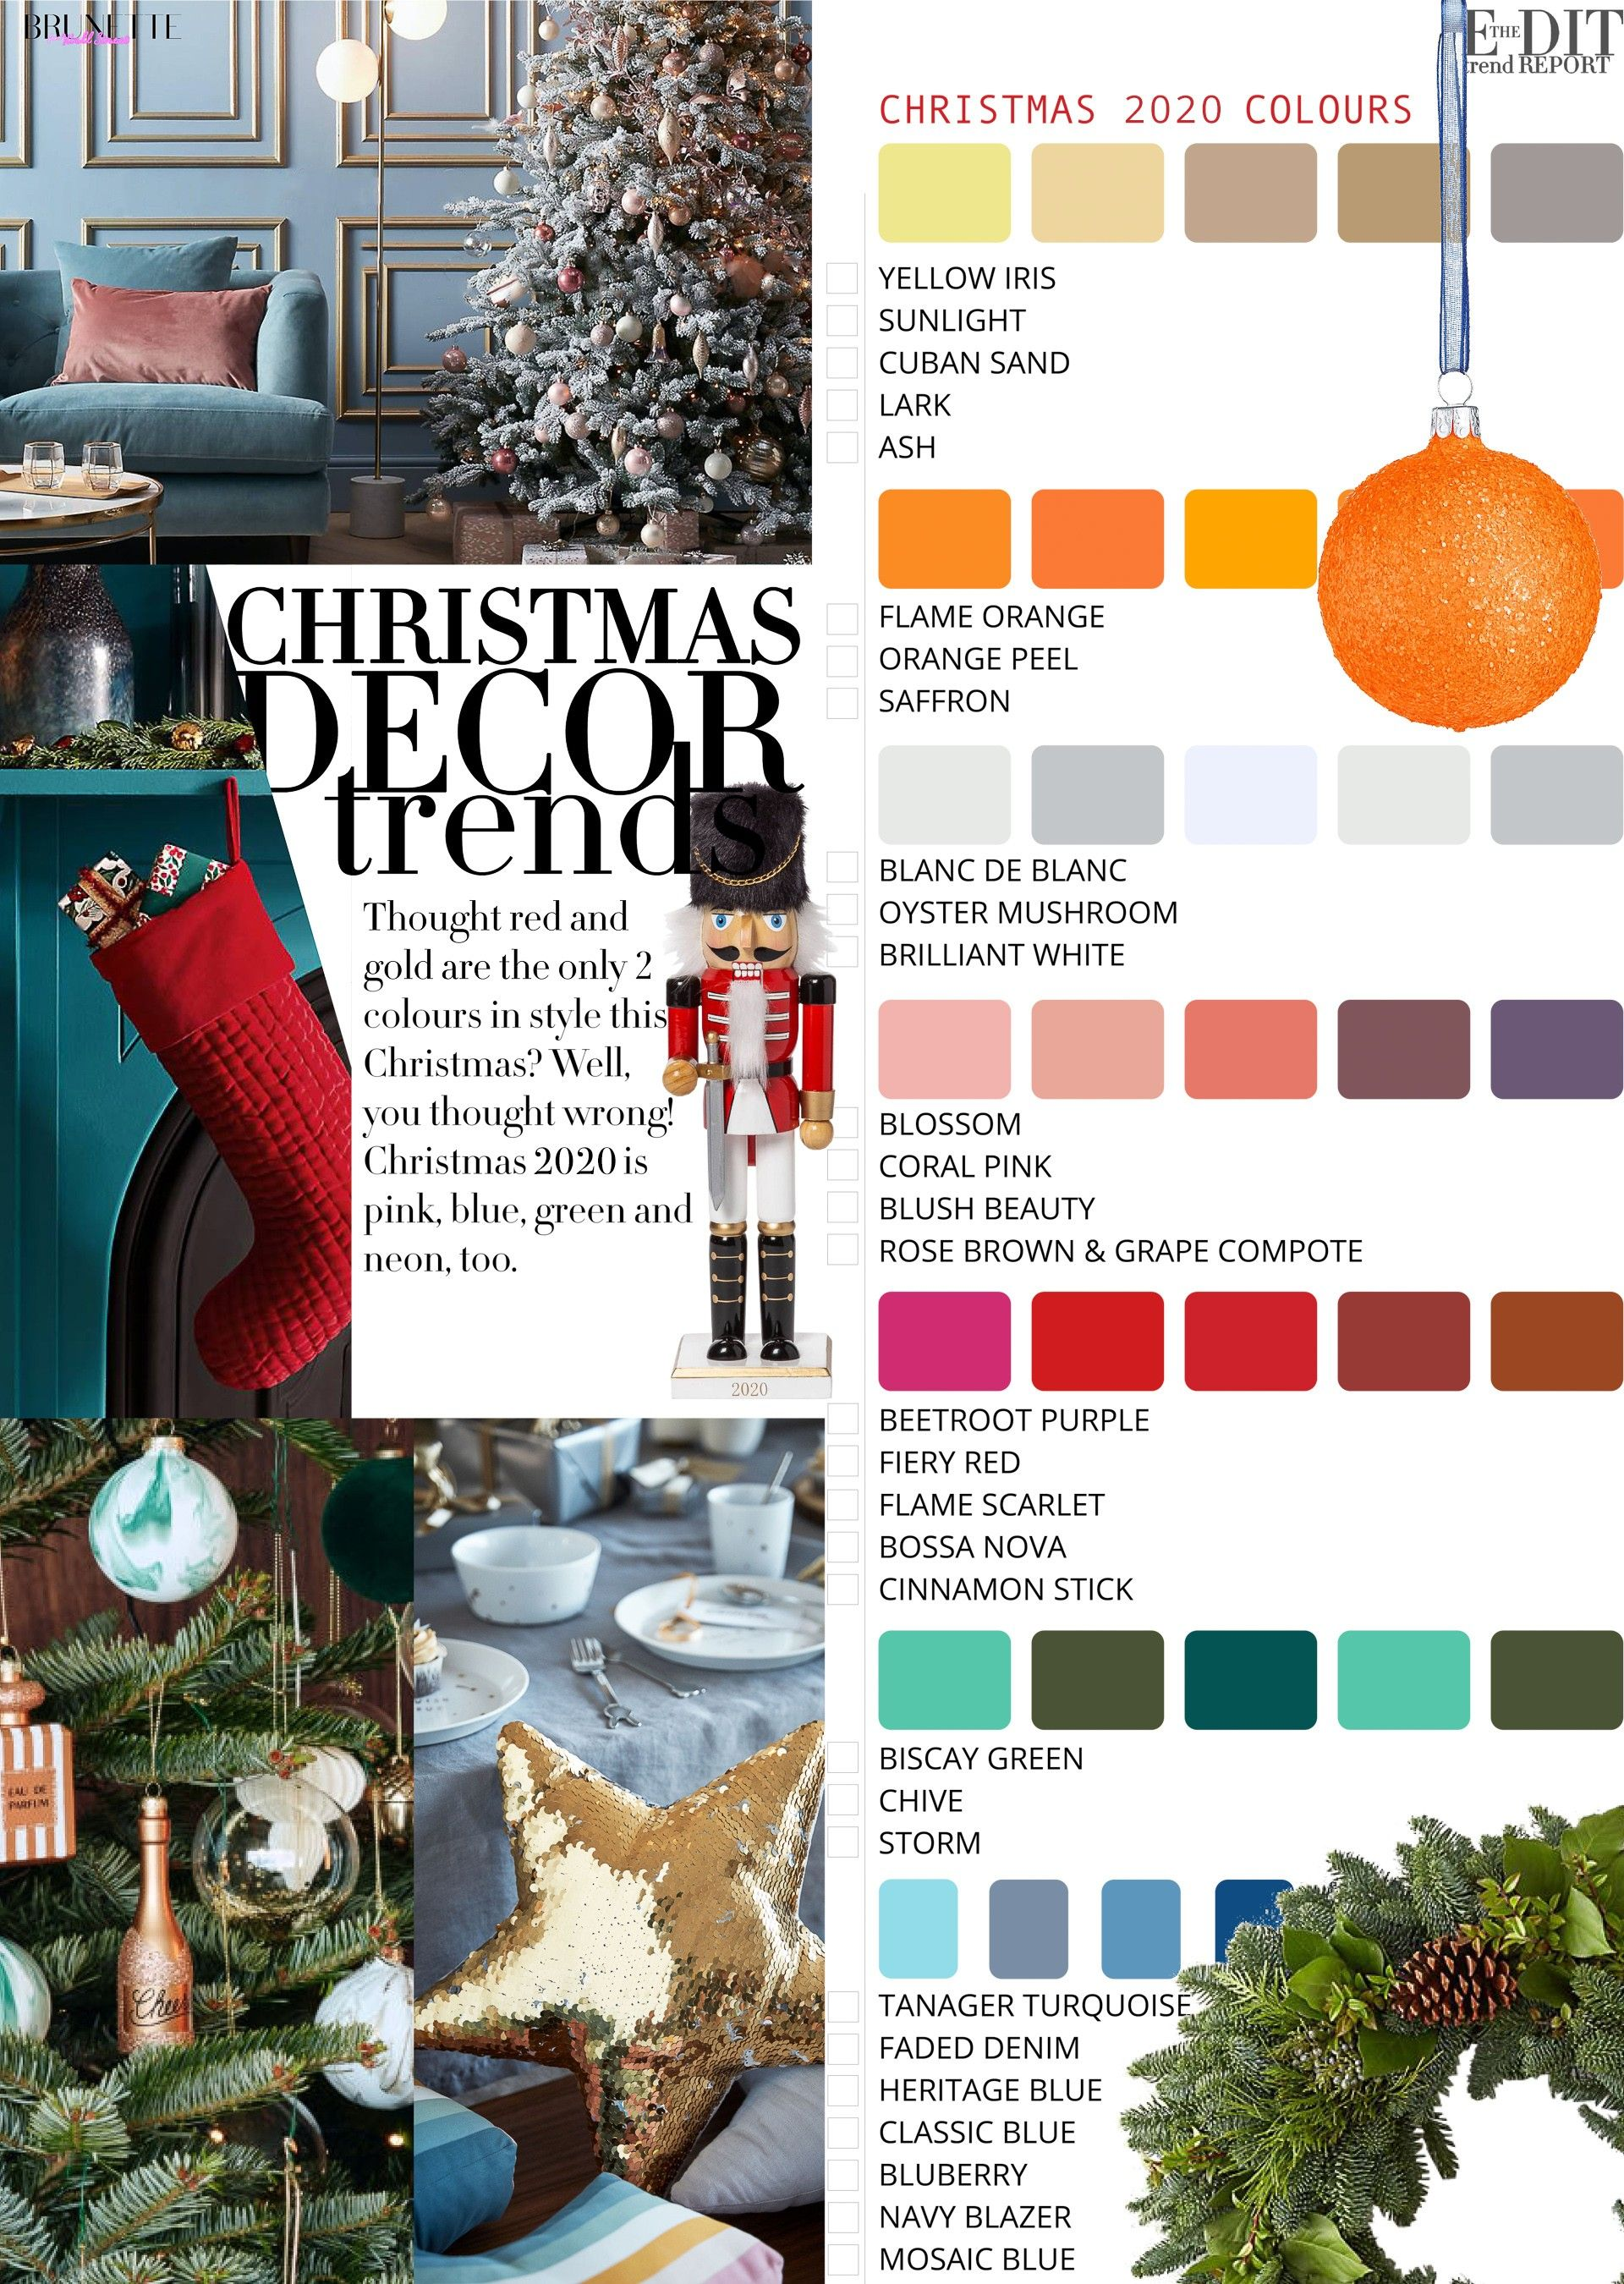 Home For Christmas 2020 How to Decorate Home for Christmas 2020? | Brunette from Wall